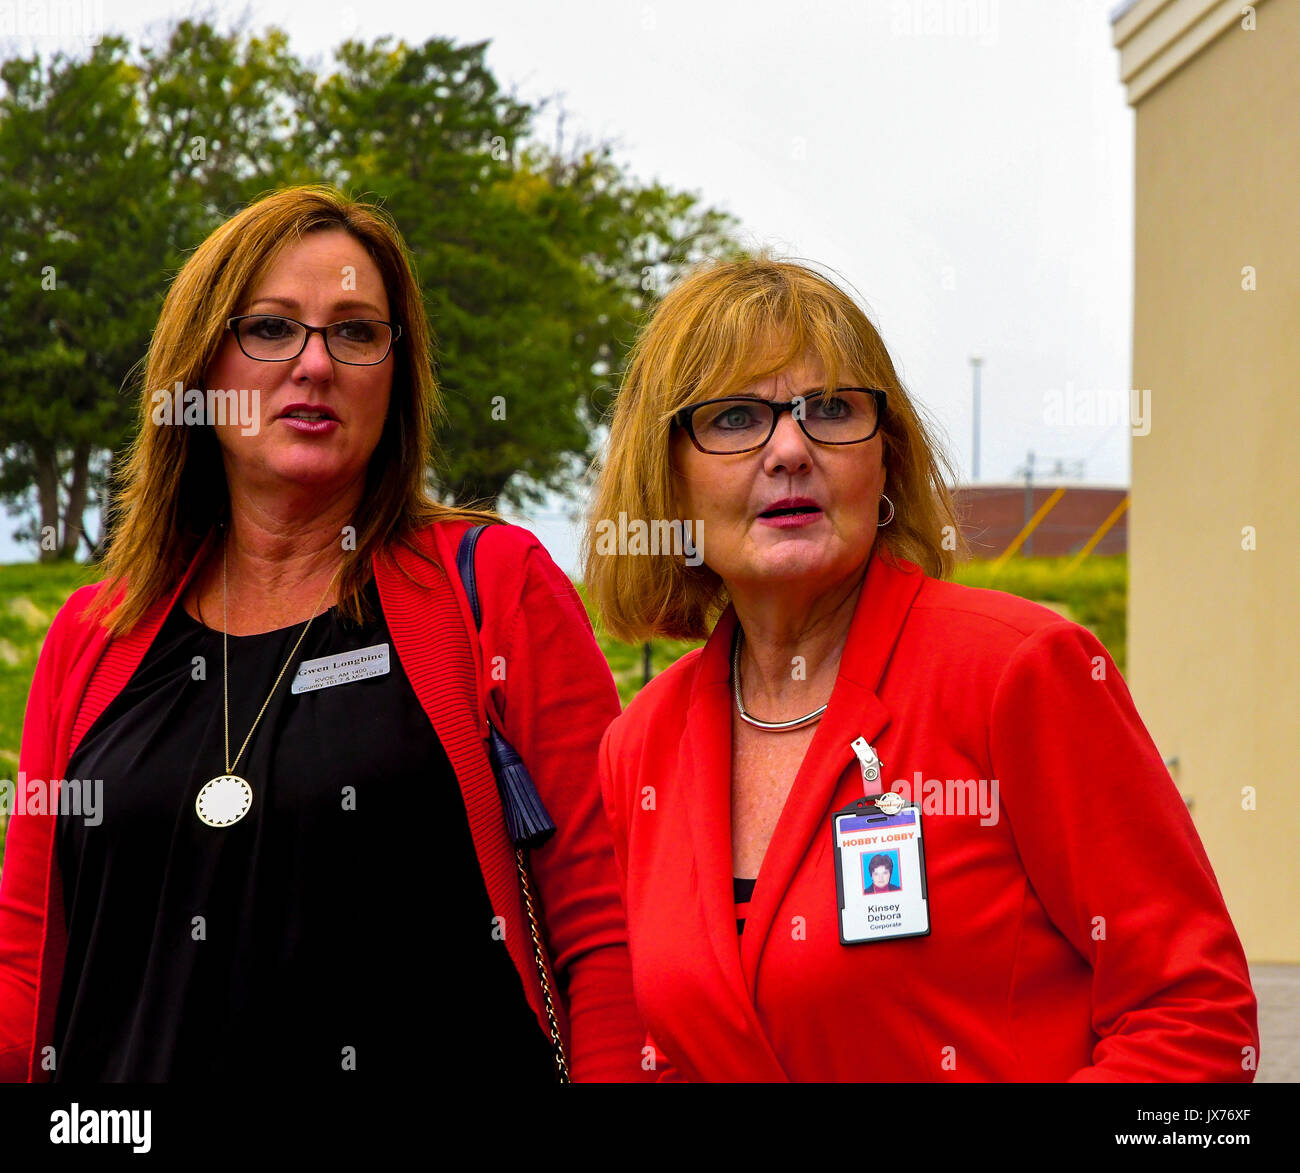 Gwen Longbine (L) of Emporia radio station KVOE (and wife of Kansas State senate  Vice President Jeff Longbine) and Debora Kinsey a corporate representive of Hobby Lobby at the grand opening of the newest store today in Emporia, Kansas August 13. 2017. - Stock Image